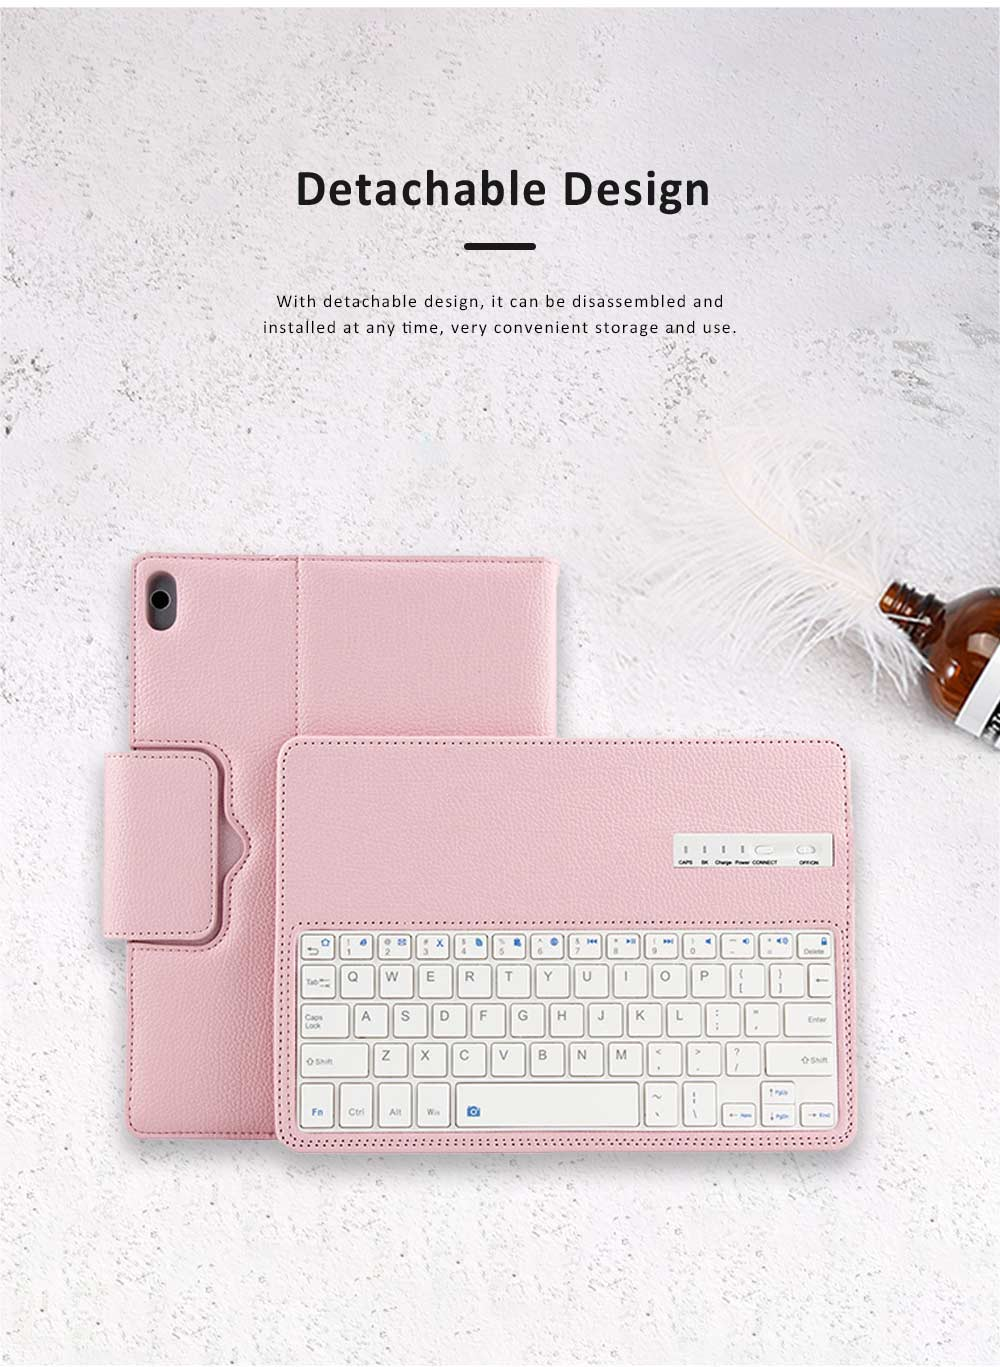 10.1 inch Bluetooth Keyboard with Detachable Leather Case, Scintillation Lamp Function Keyboard for Huawei Honor Waterplay 10'' 2